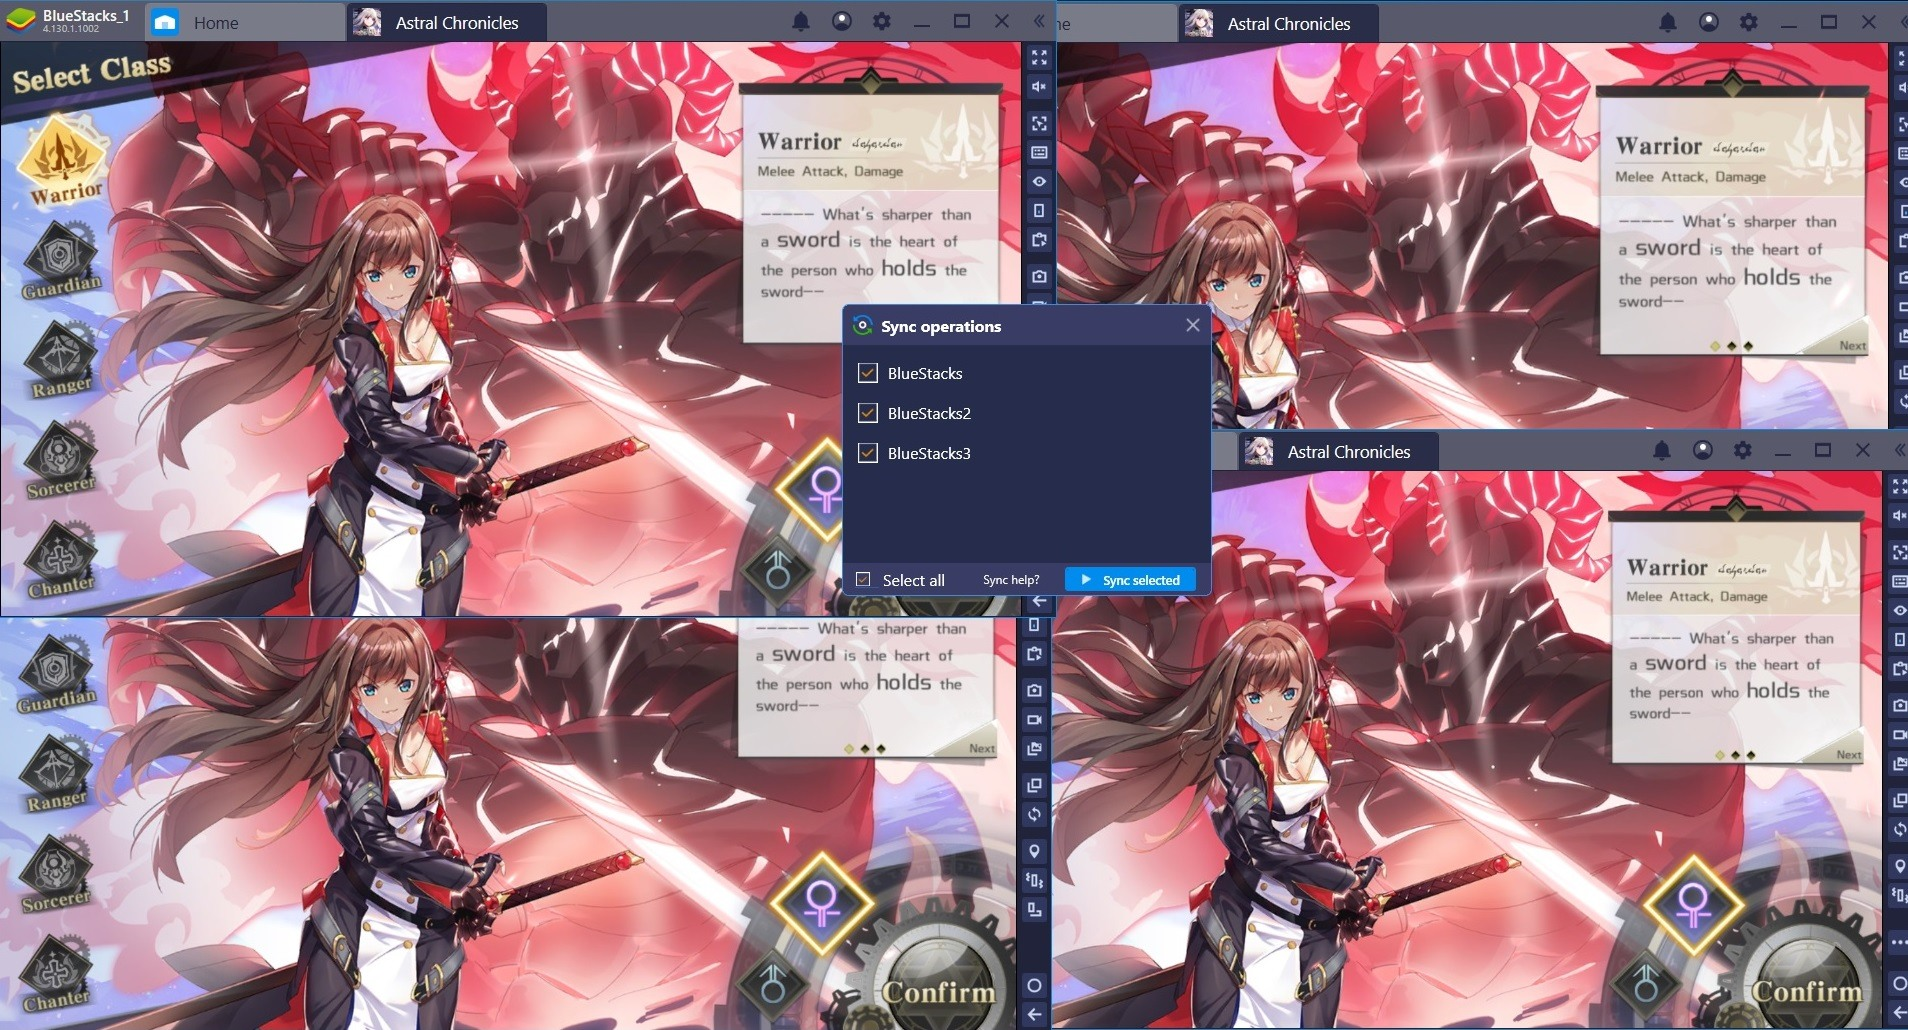 BlueStacks Features: Meisterhaftes Gameplay mit Multi-Instanz-Synchronisierung